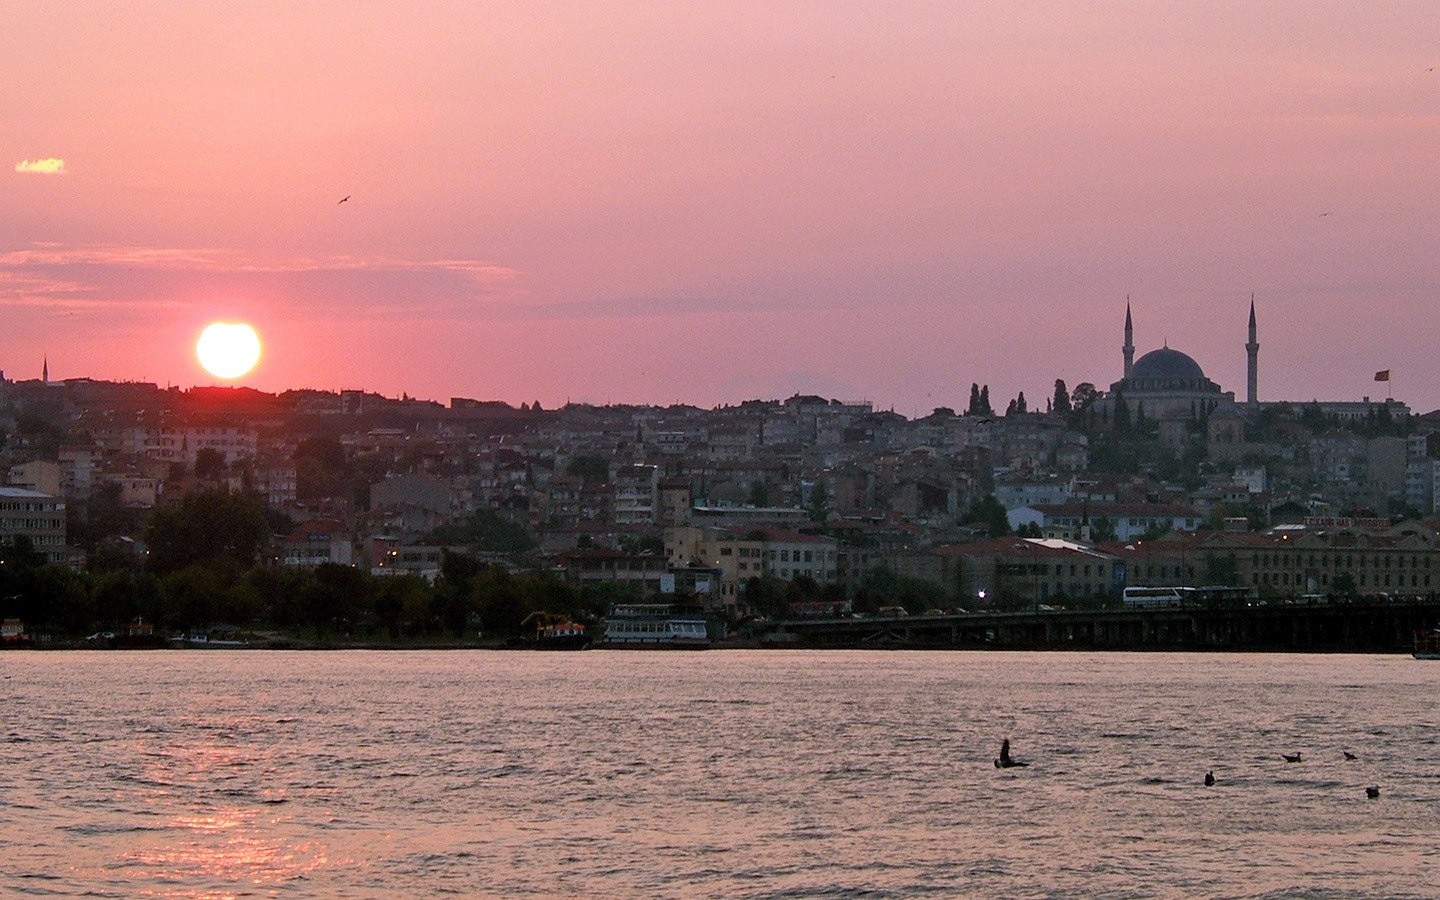 Pink sunset over Sultanahmet from the Galata Bridge